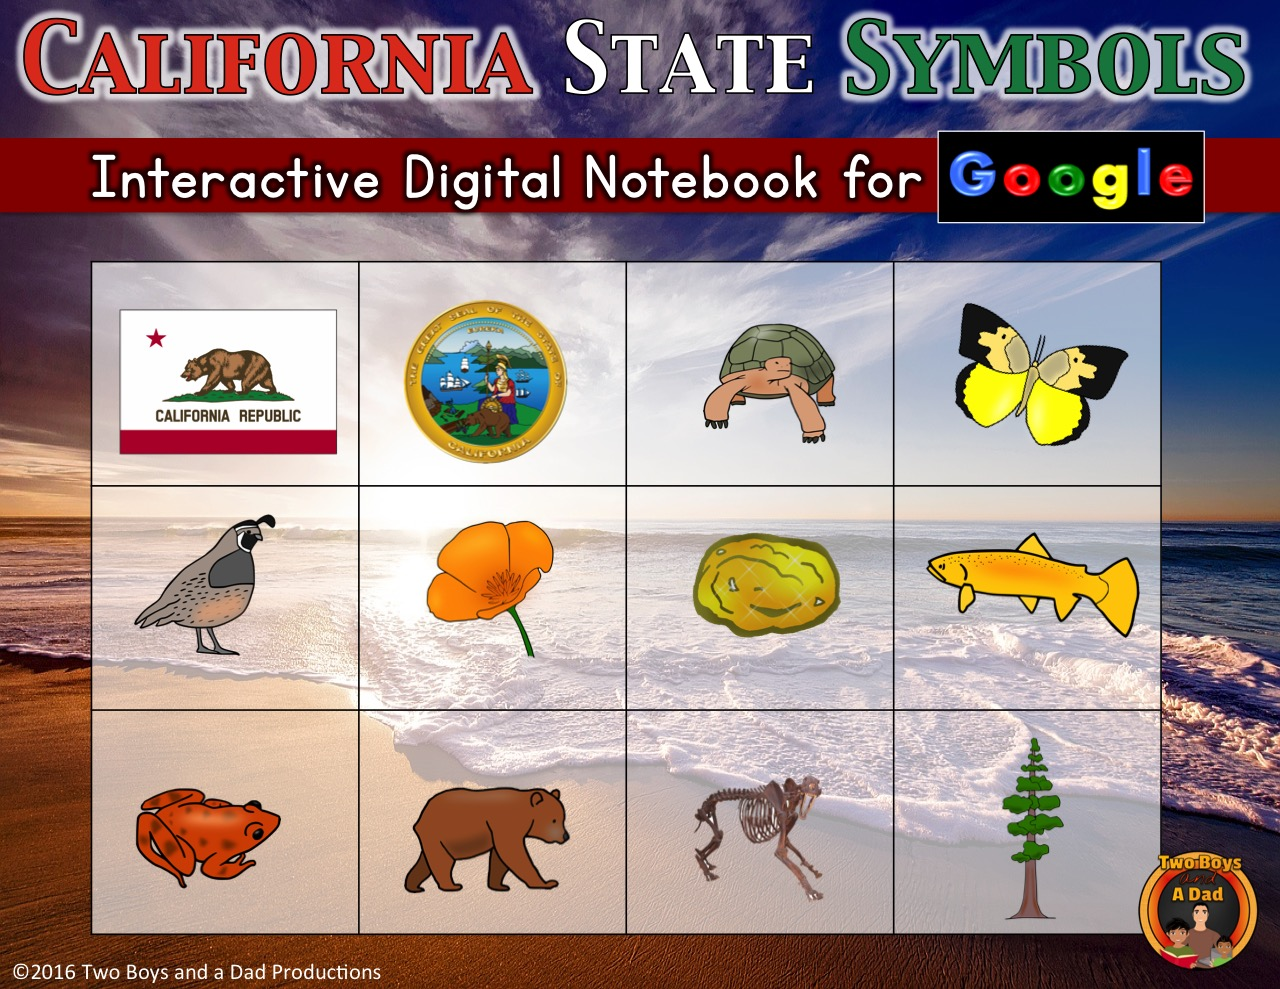 California State Symbols Interactive Digital Notebook